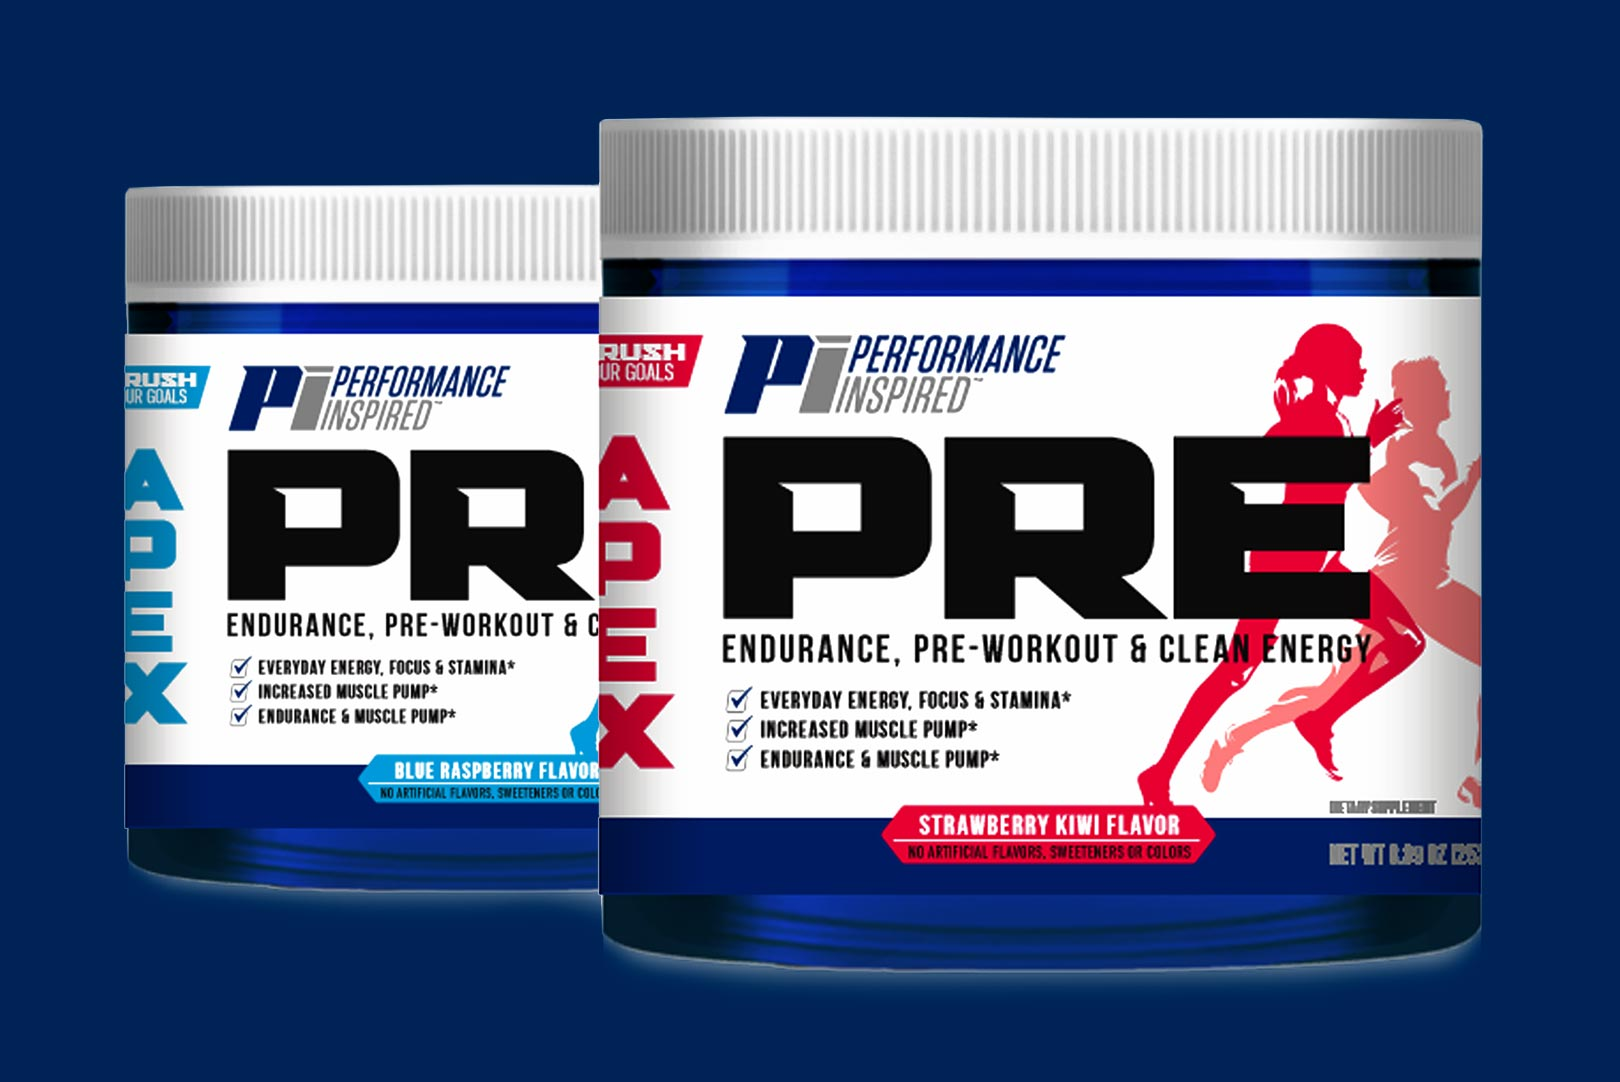 performance inspired apex pre-workout